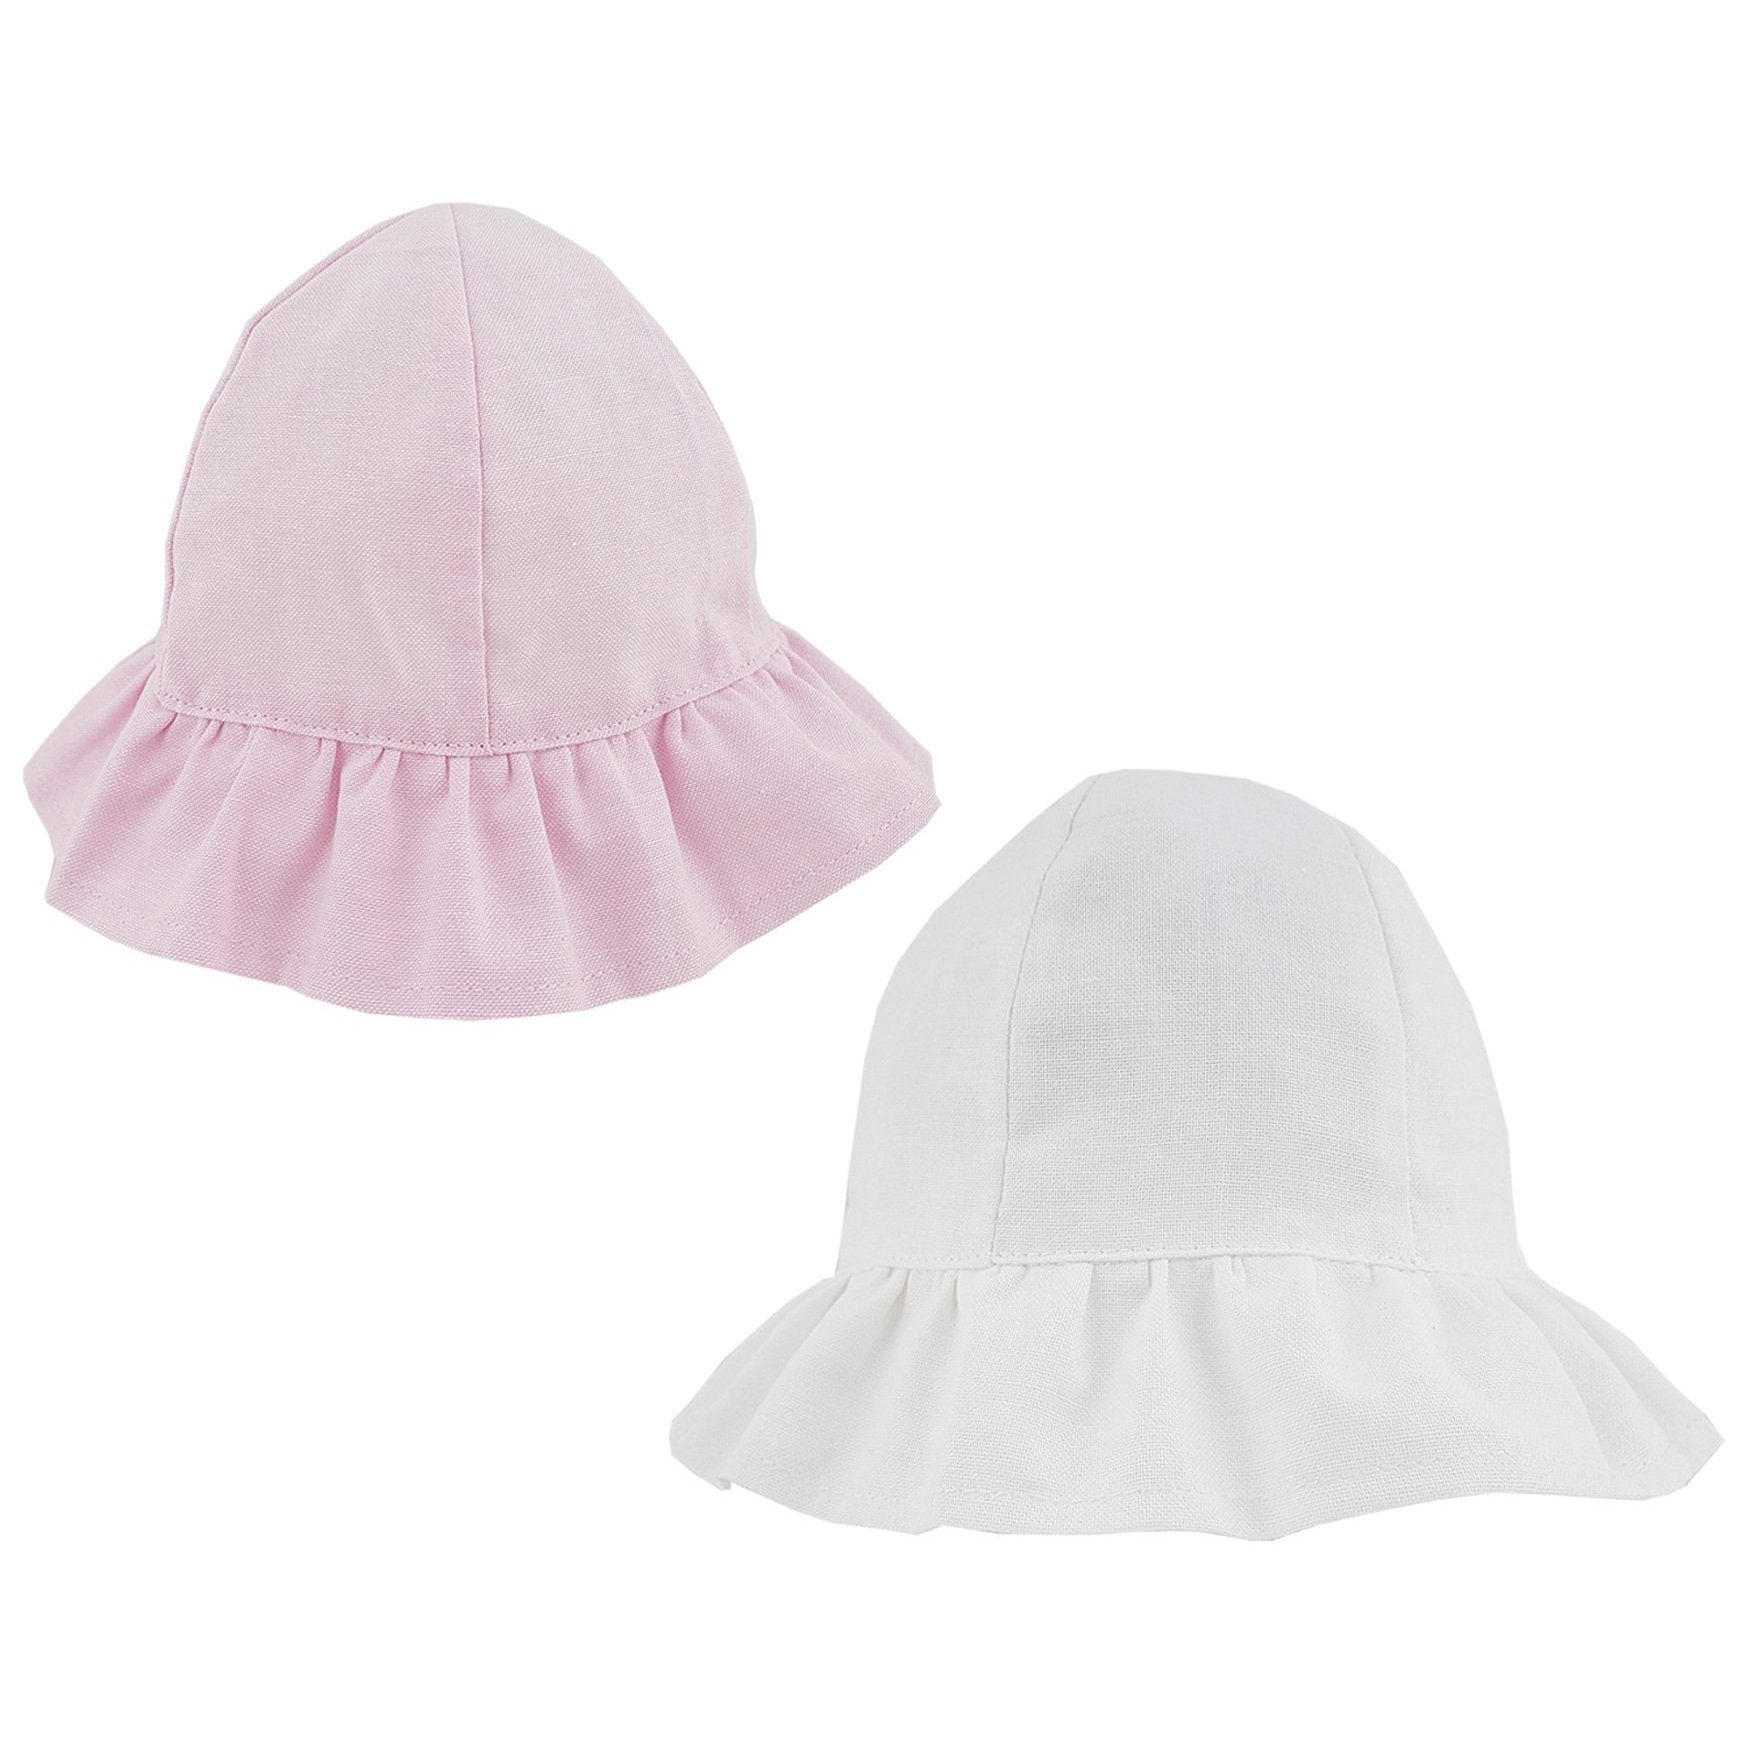 Pesci Baby Frilled Sun Hat | Millie and John